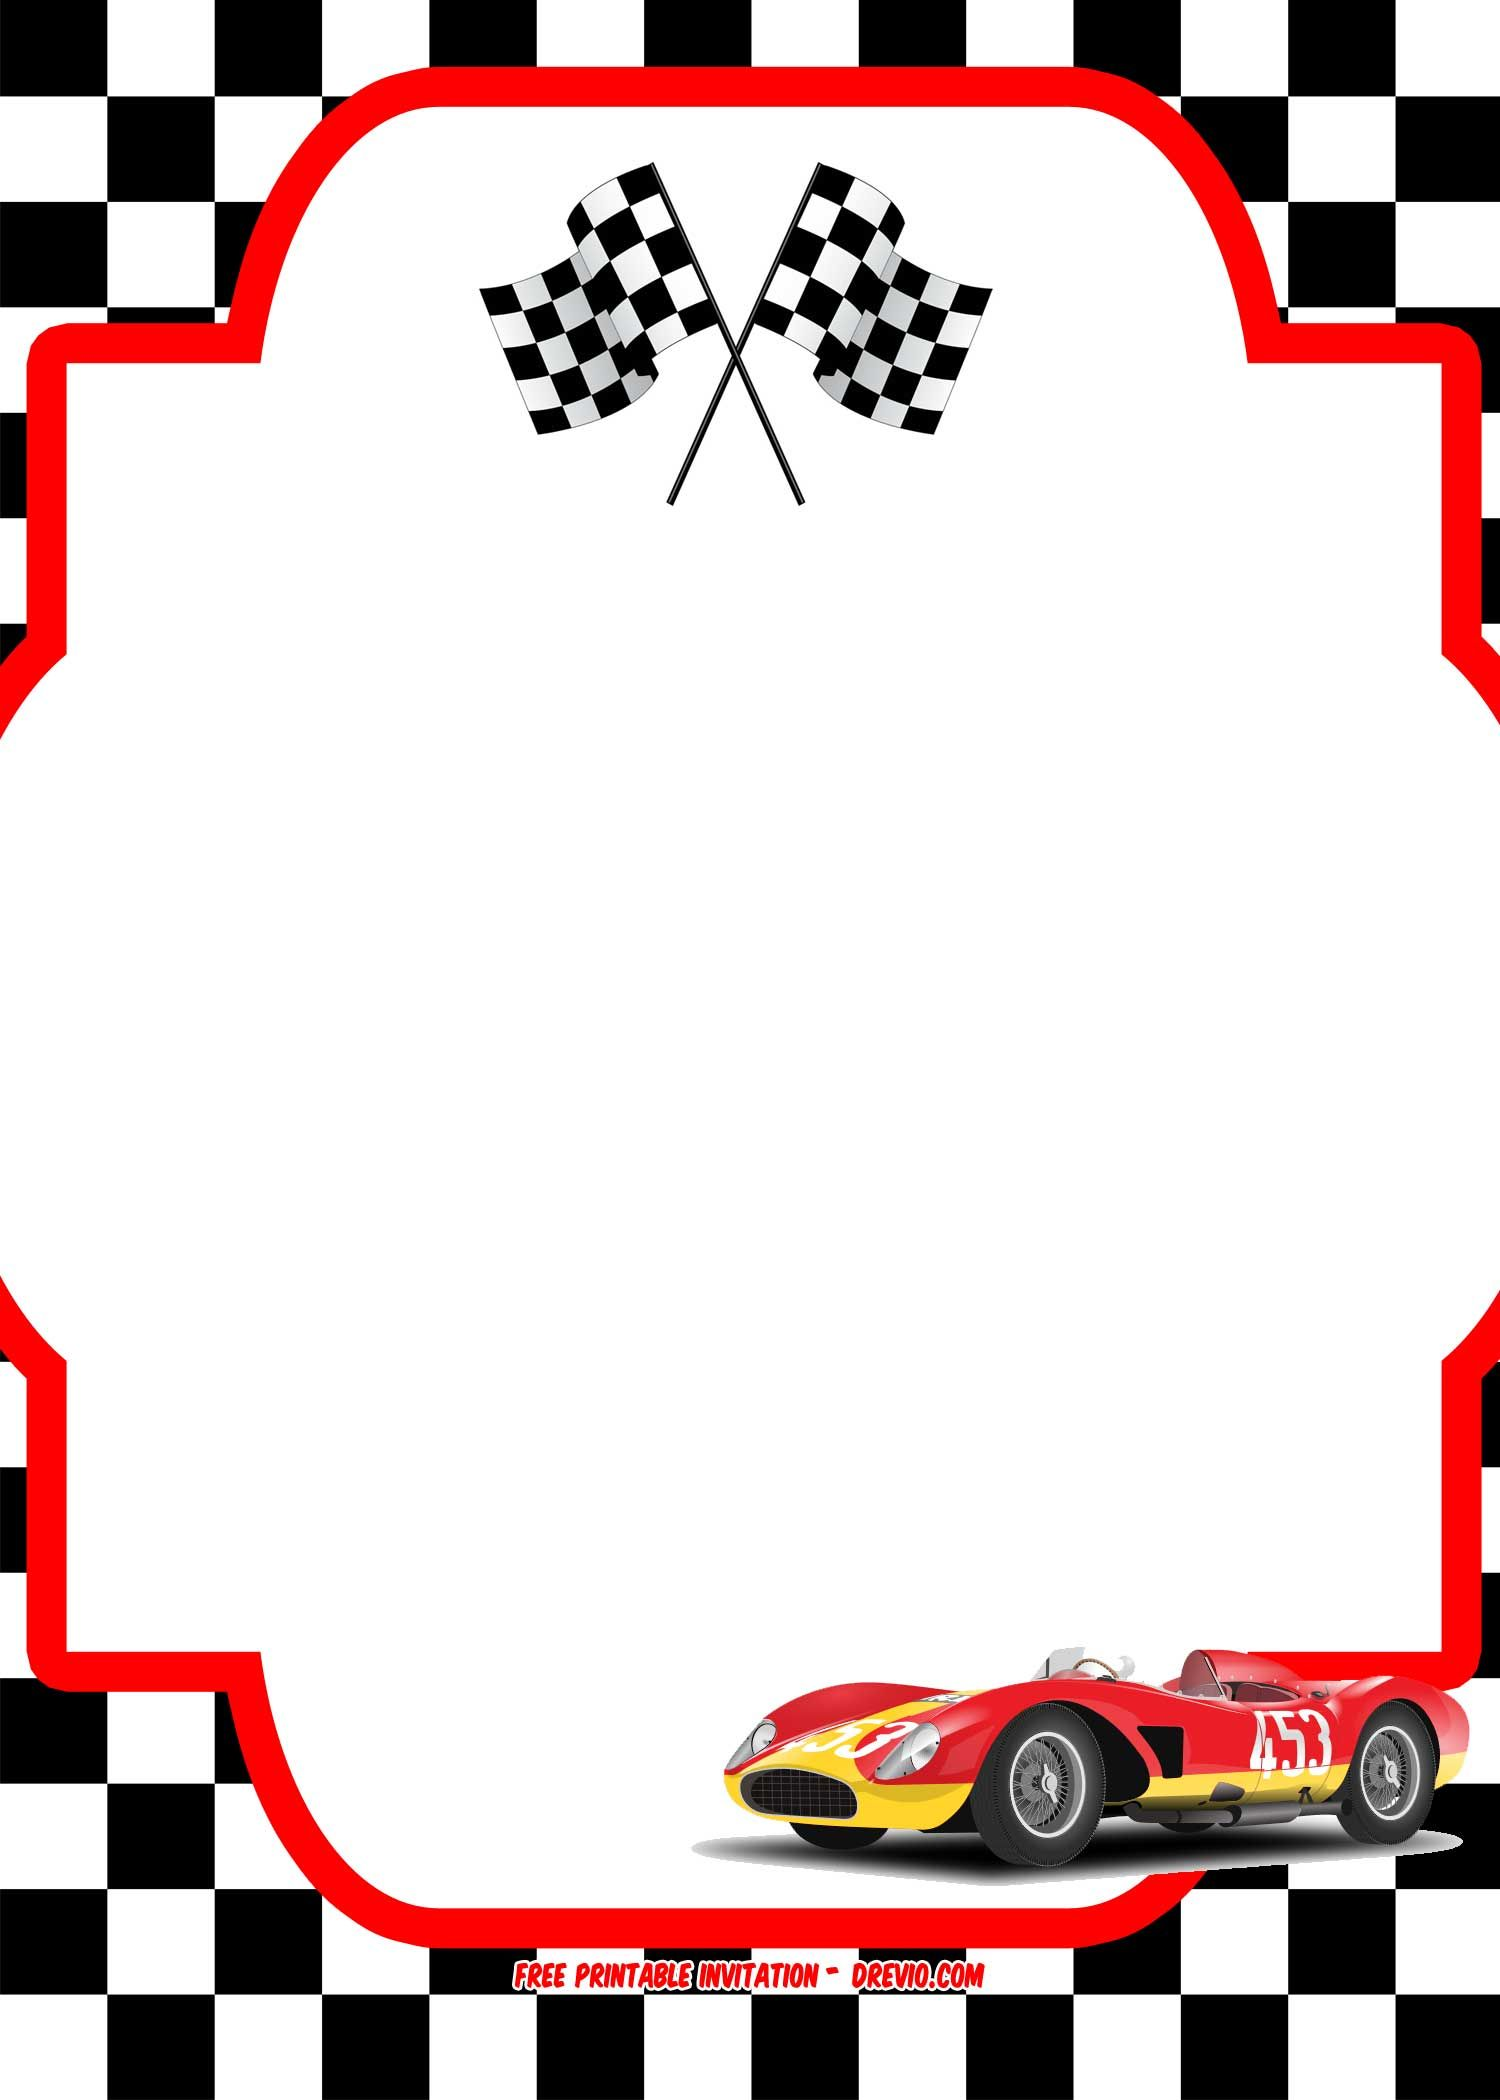 Free race car birthday invitation template printable for Blank race car templates